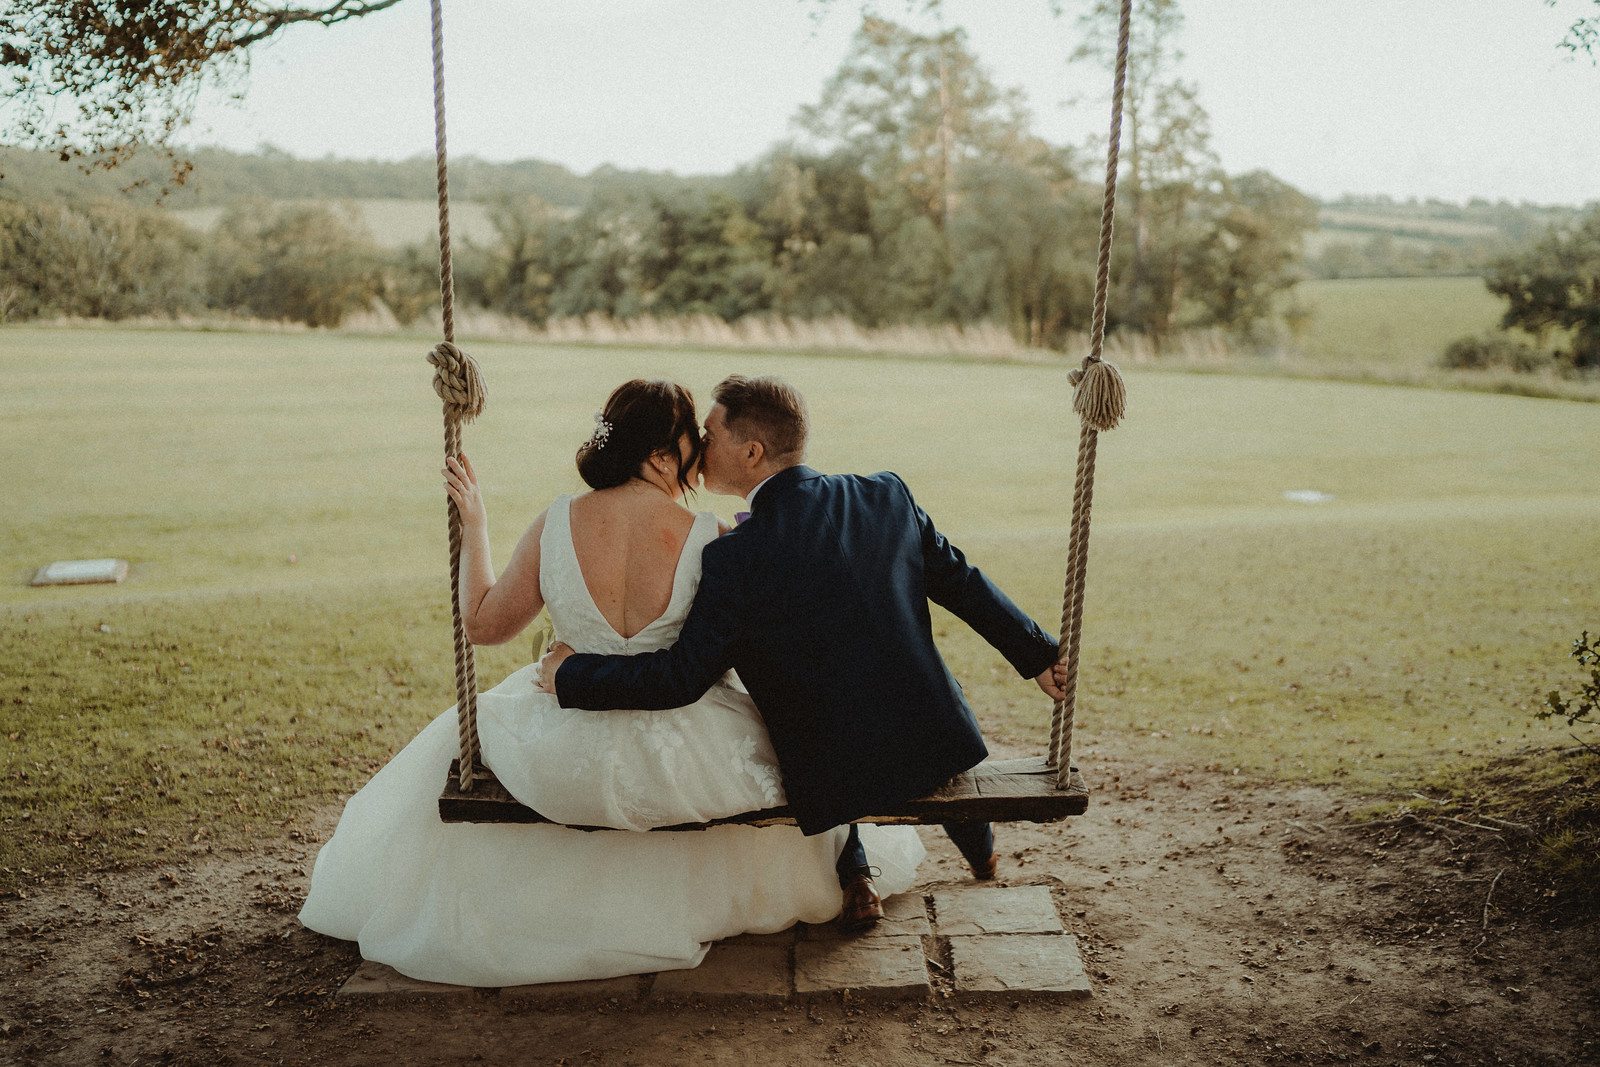 Bride and groom kiss as they are sat on the wedding swing